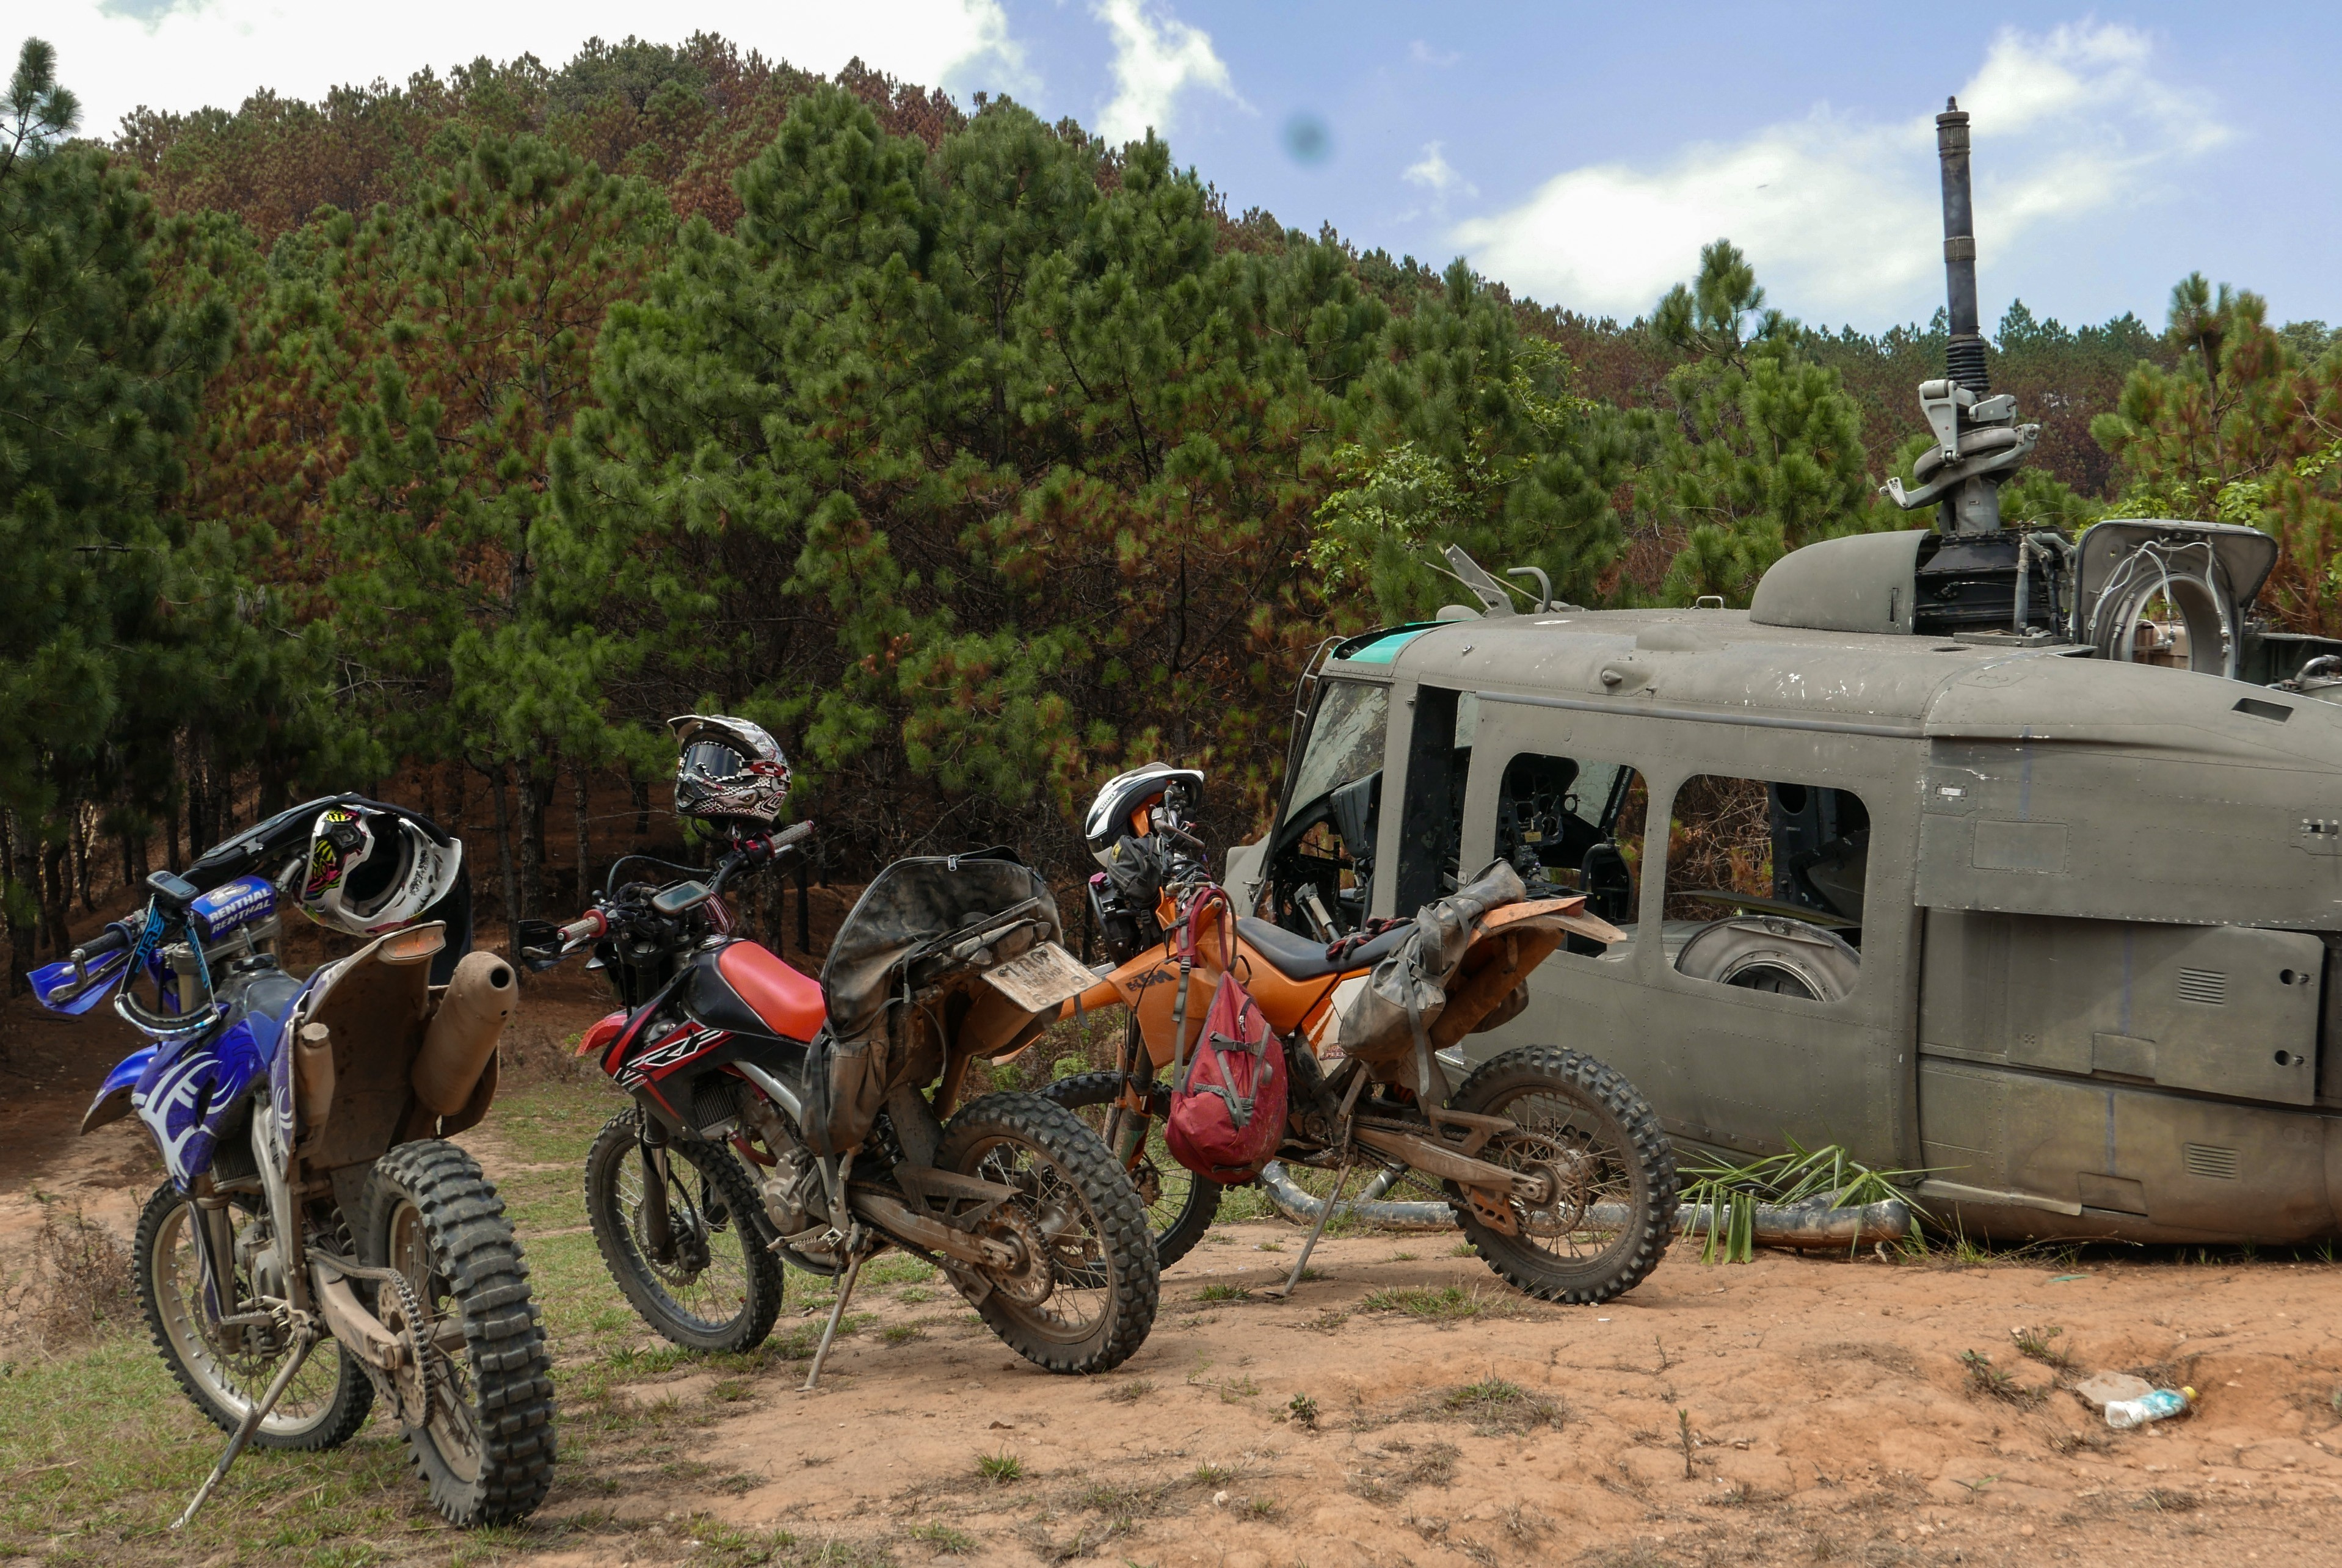 Thailand off road motorcycle tours with Motoasia. Book our adventure tour and live an off road experience riding the best dirt trails in Thailand.